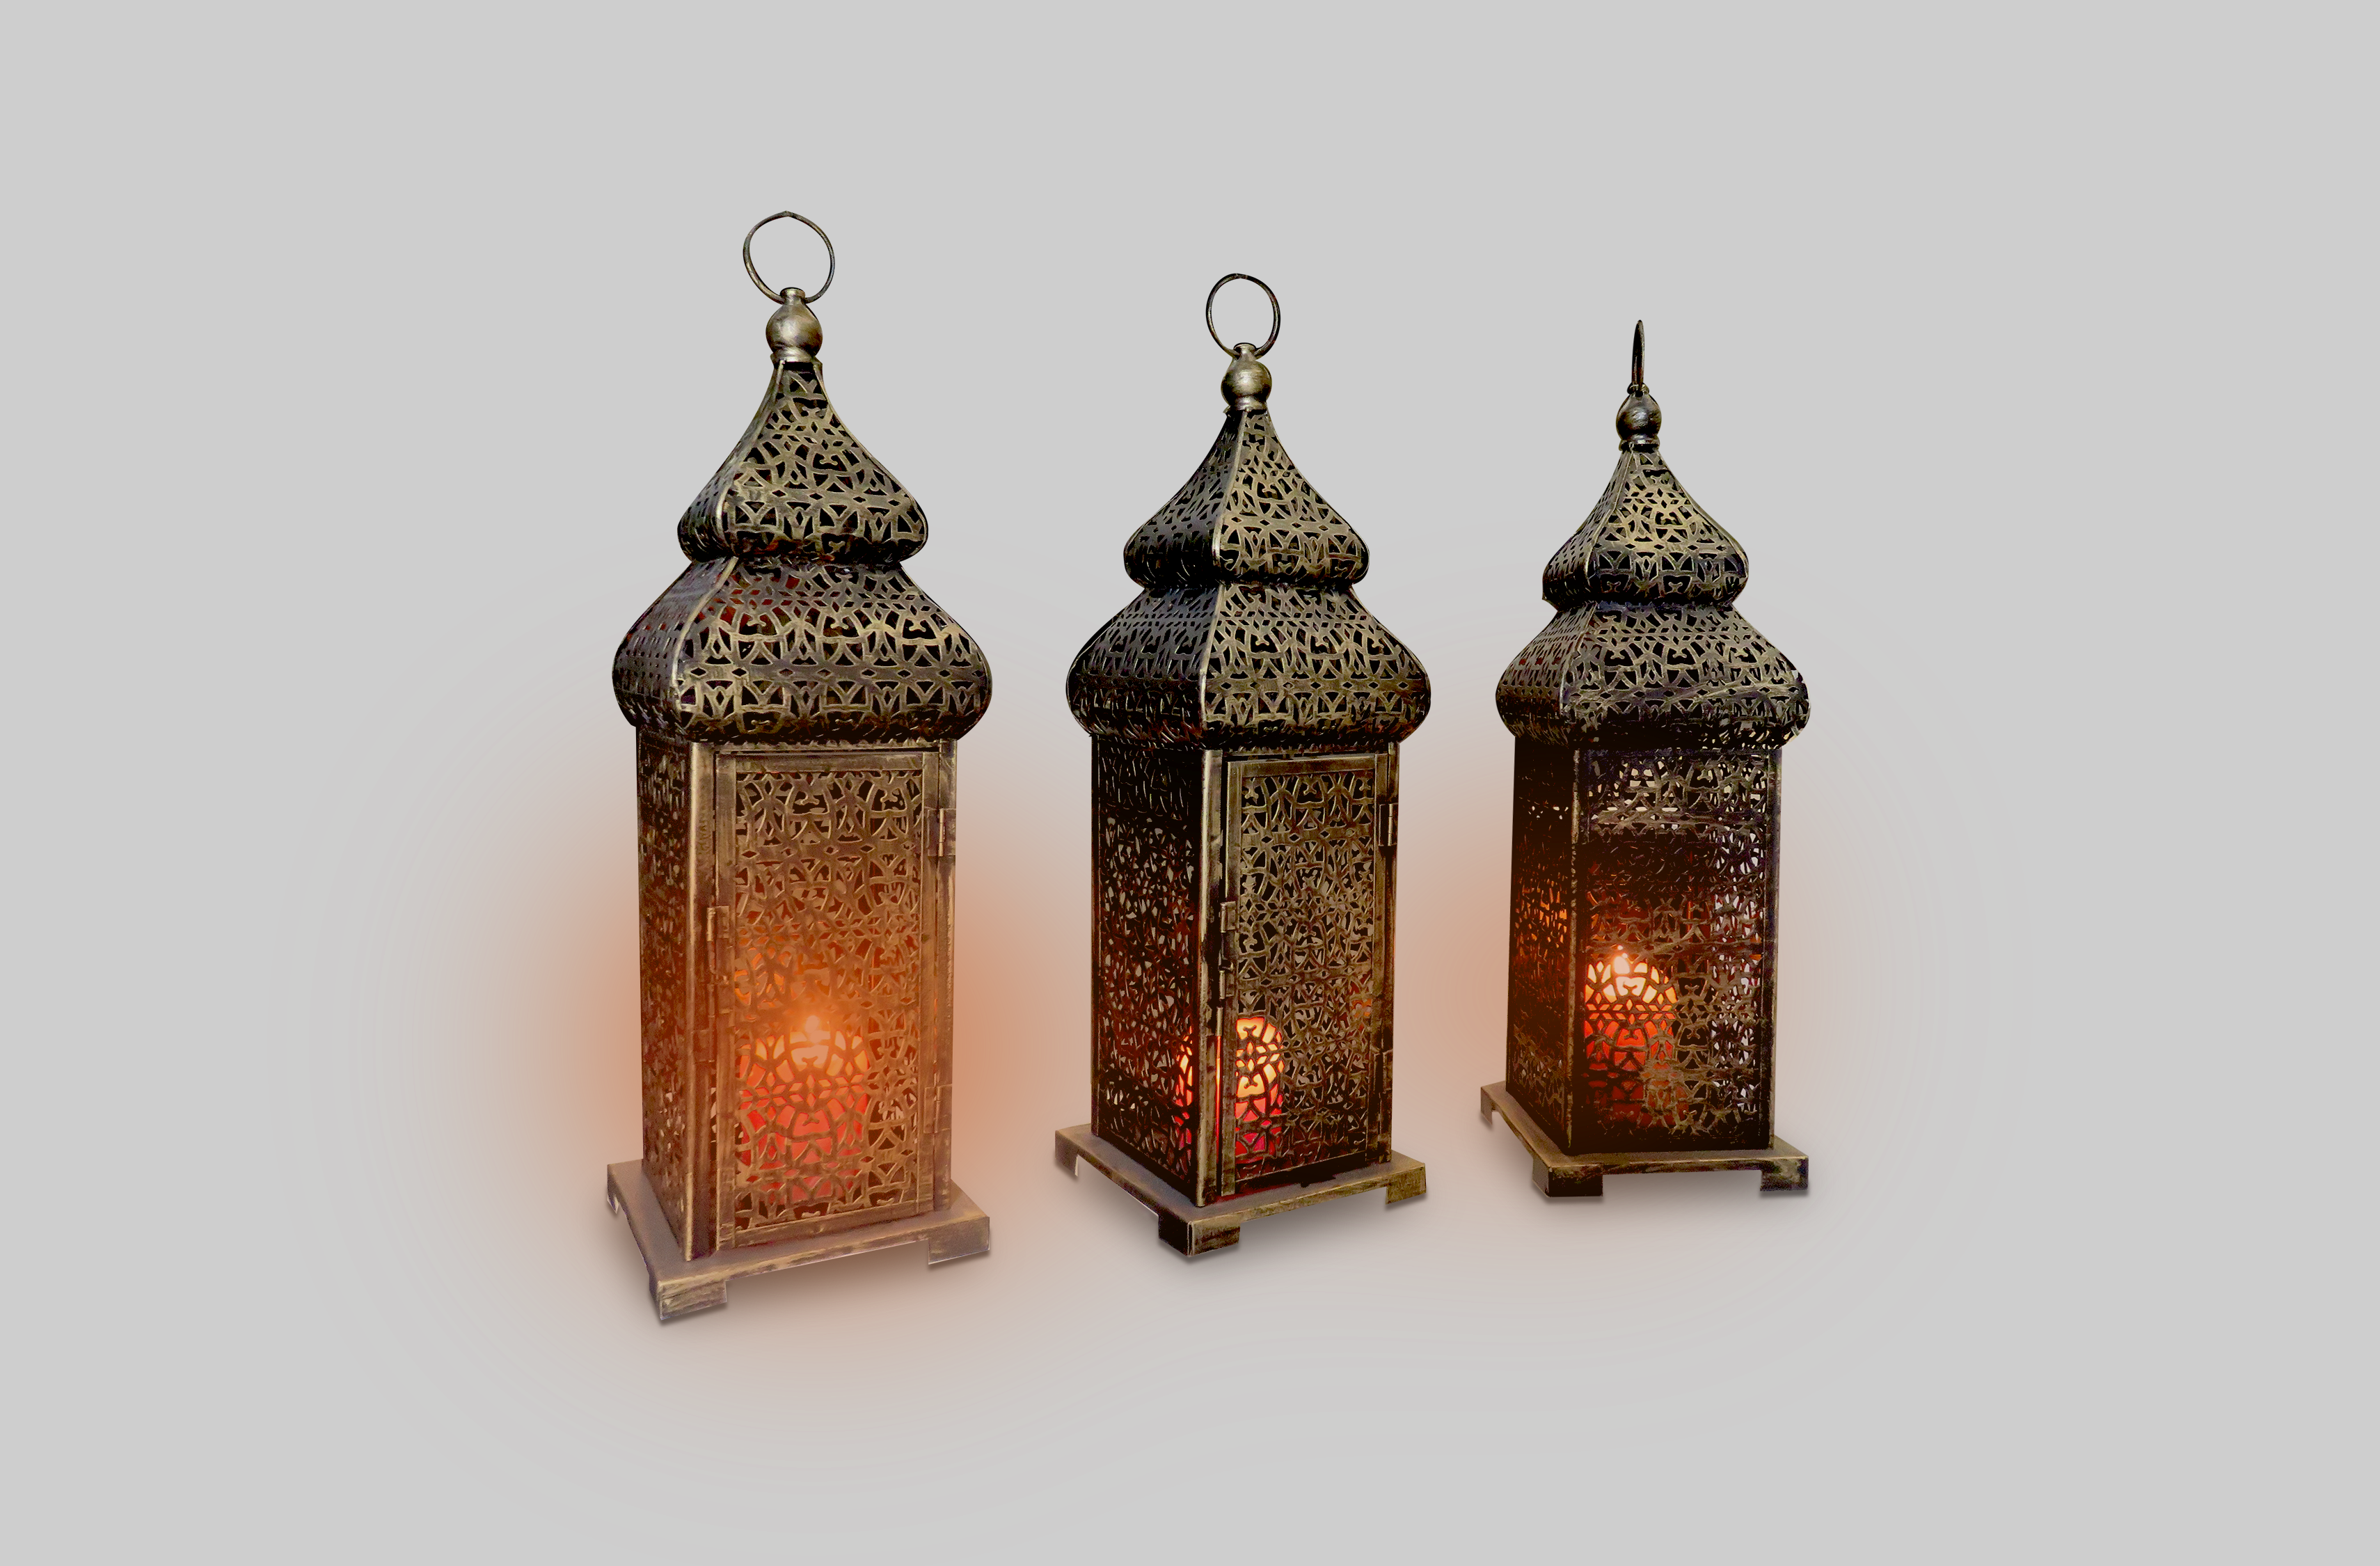 dubai desert suidi lighting classic hanging en lantern bazaar light arab shop free market mall arabic photo images lamp old